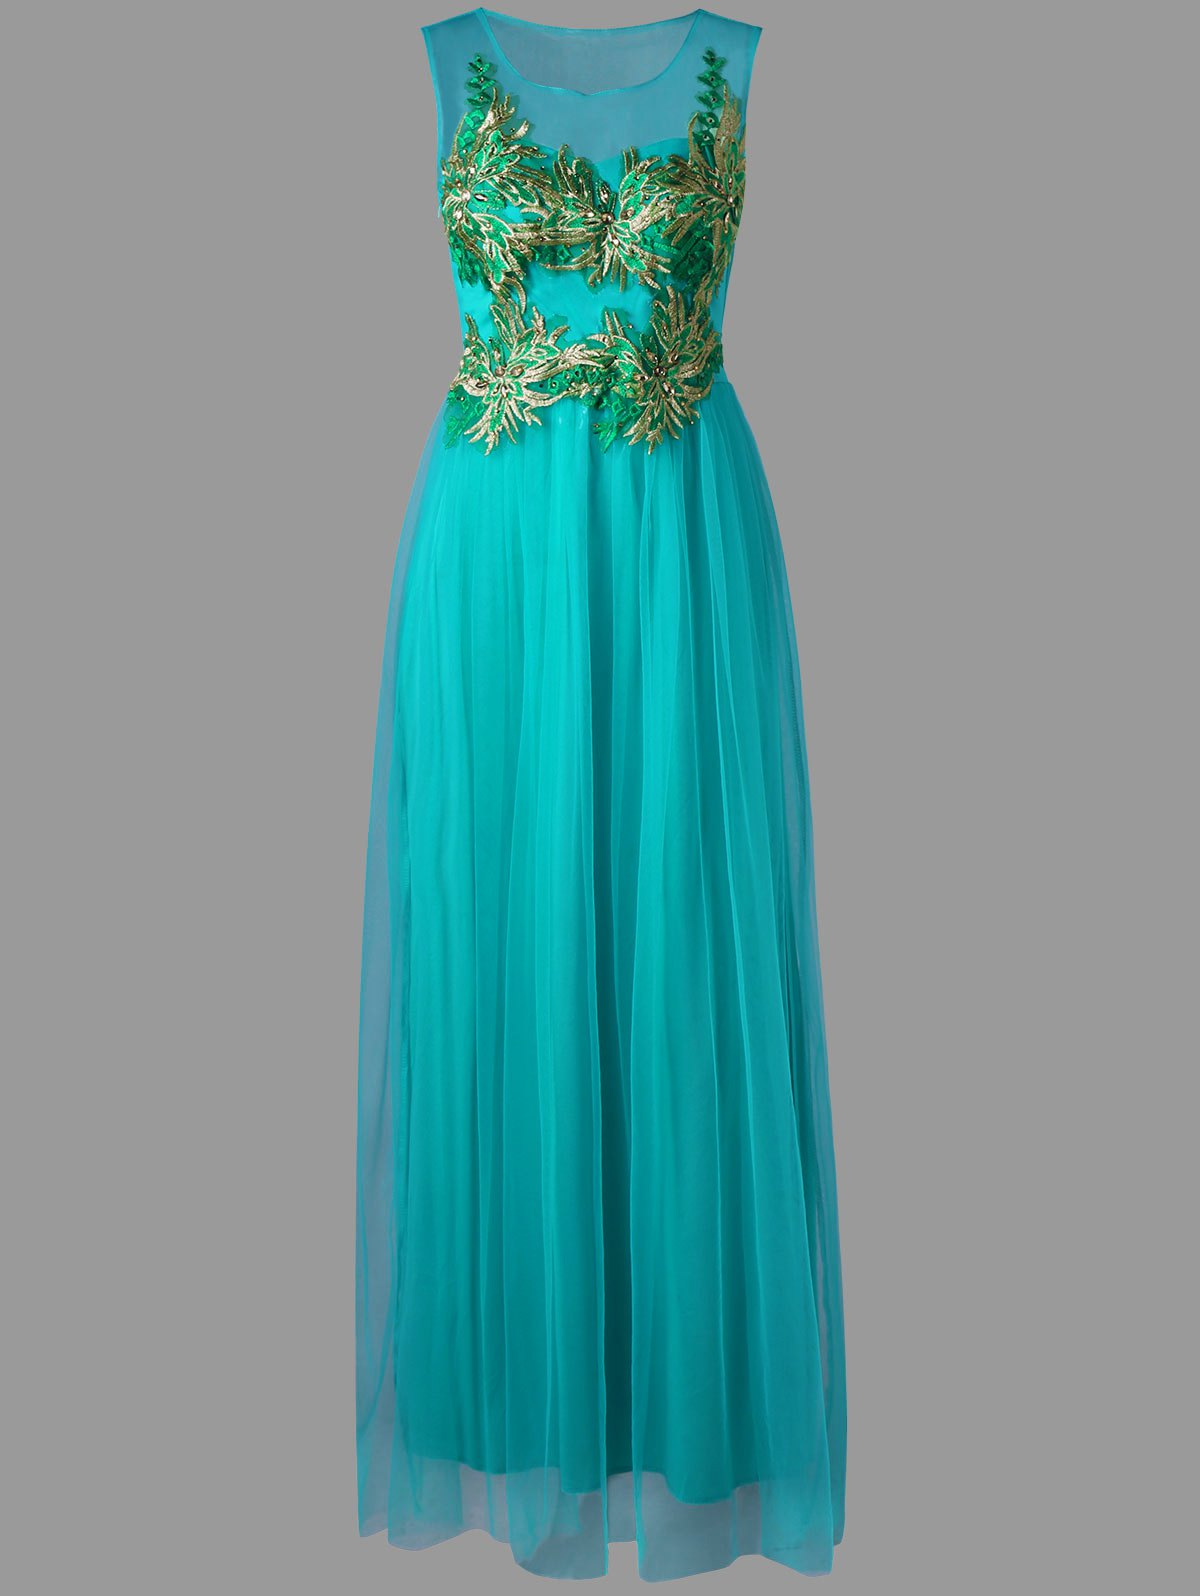 Tulle Sleeveless Floral Maxi Dress - CYAN 2XL